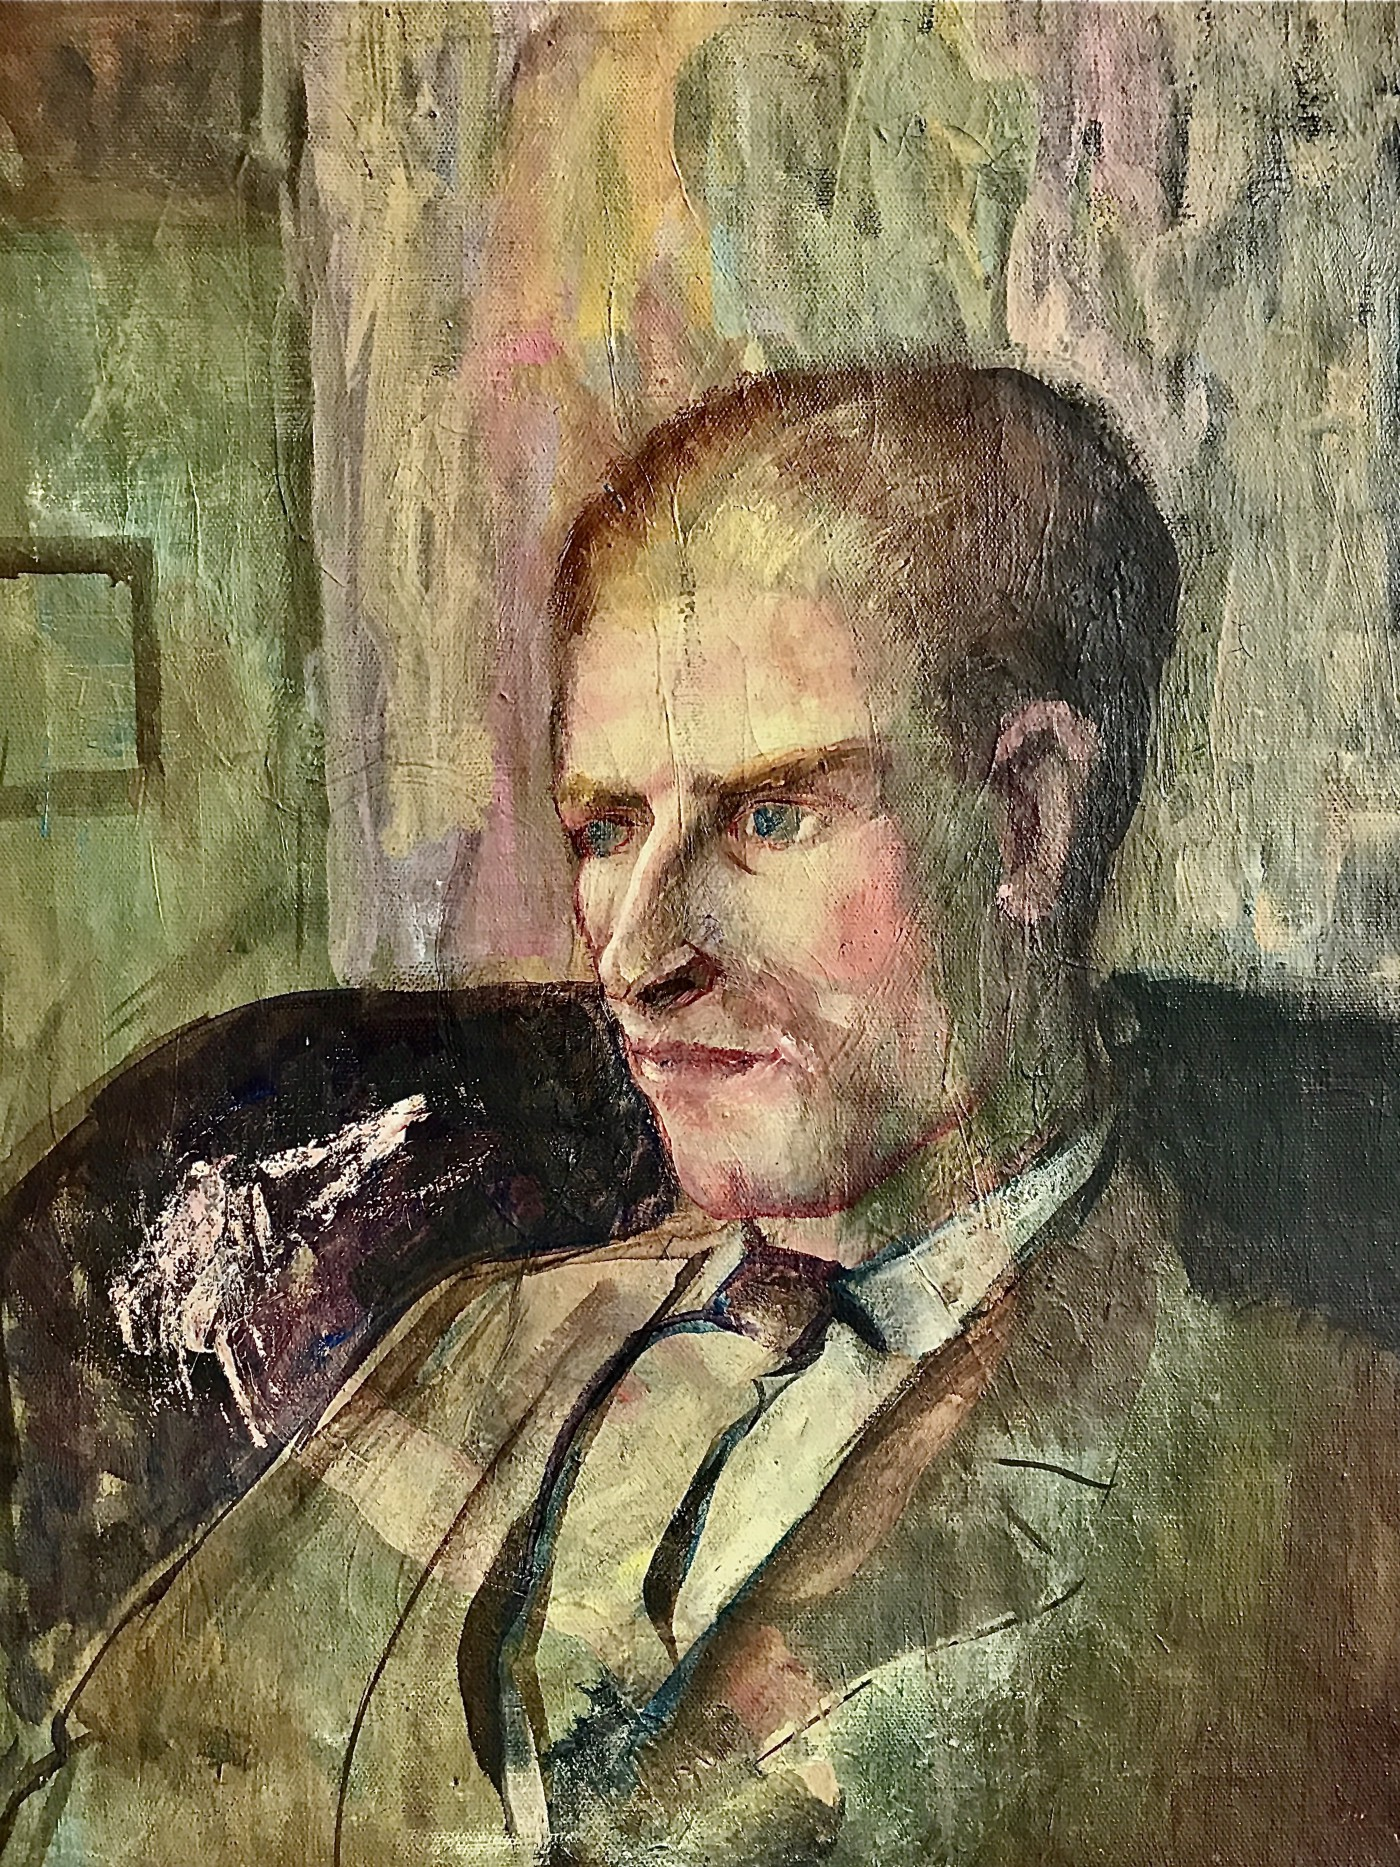 Mixed media primitive painting of an older man sitting in a lounge chair staring intently with a contemplative expression